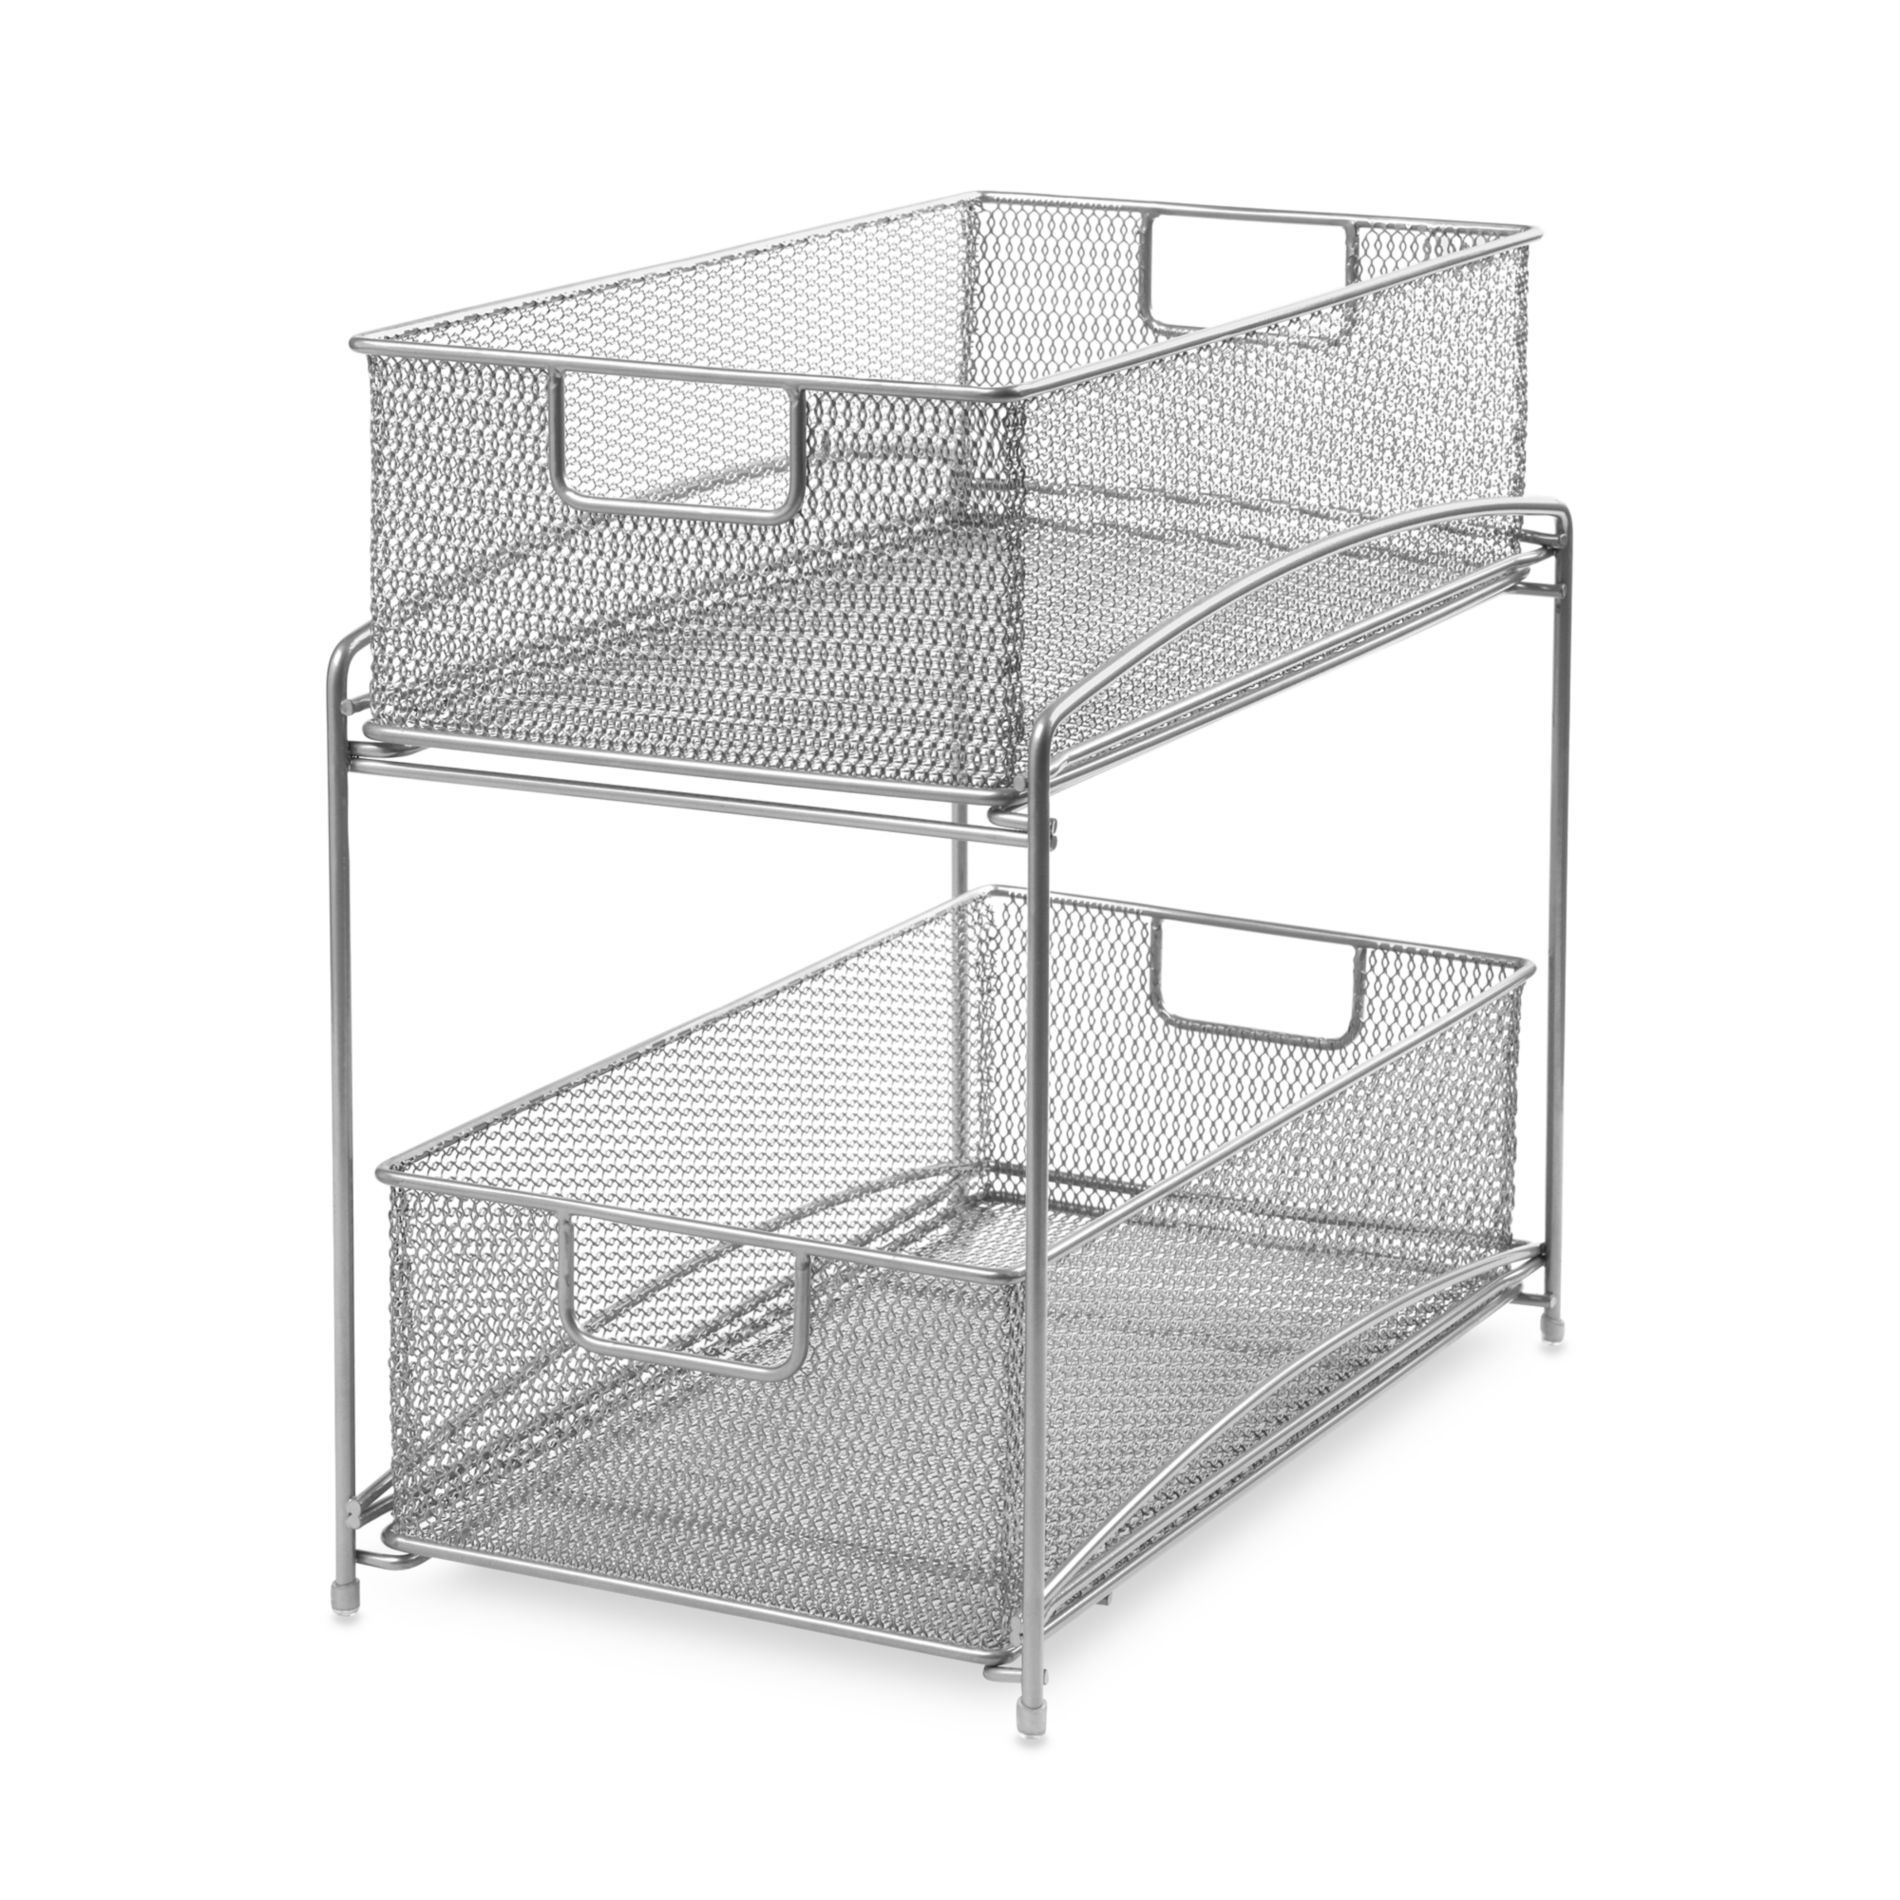 Two Tier Sliding Basket Organizer - BedBathandBeyond.com - For ...